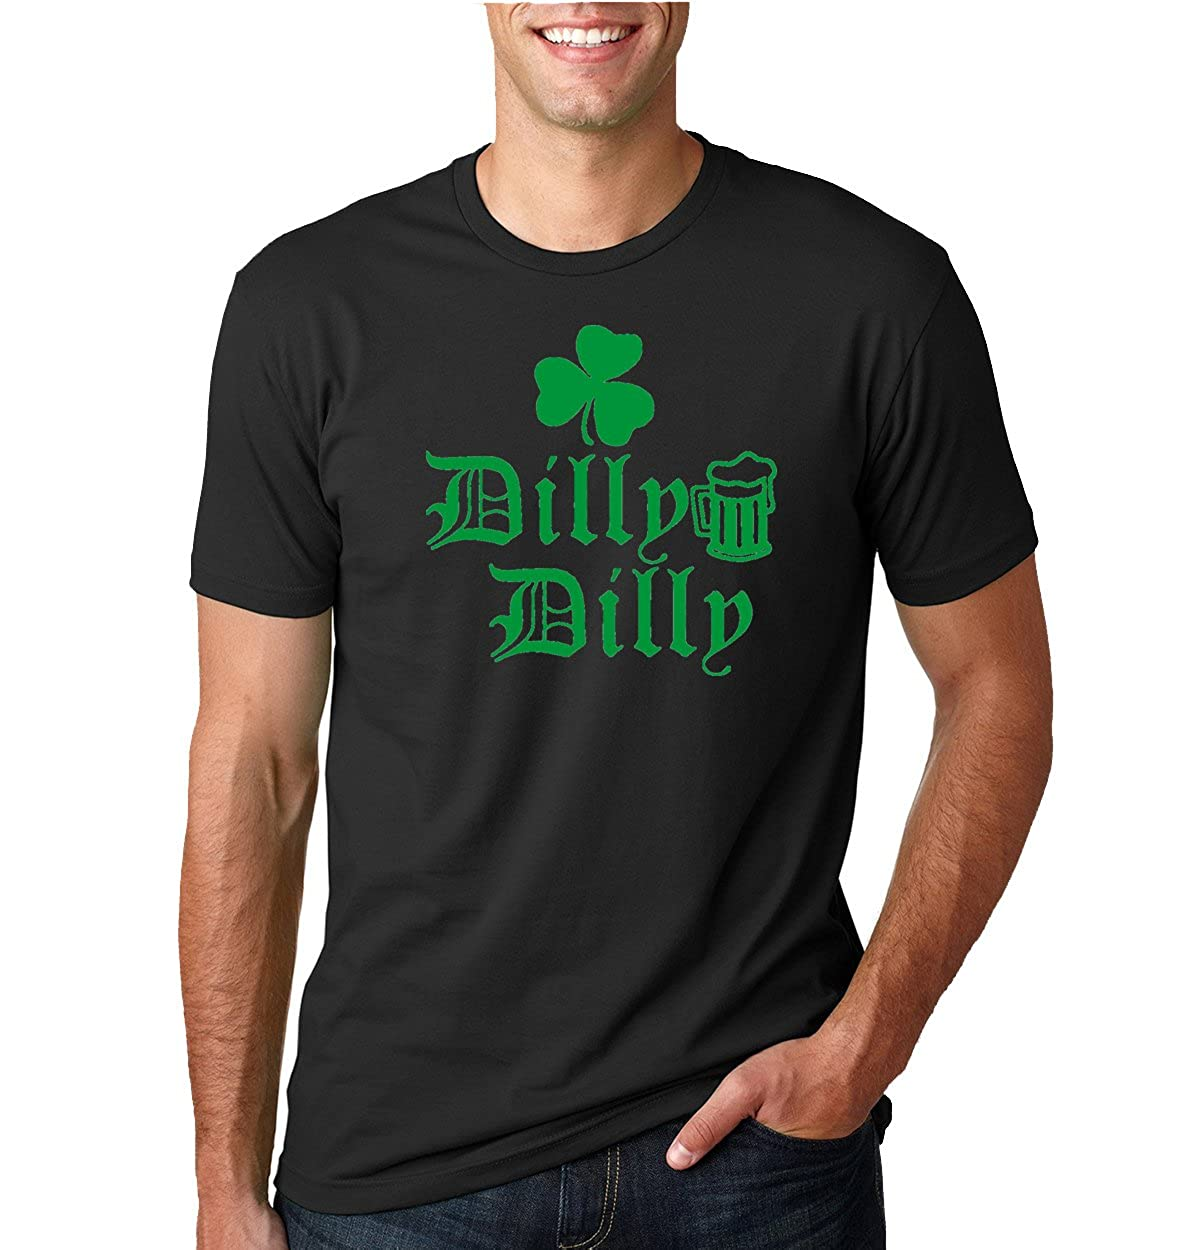 Dilly Dilly Beer Shamrock Green S St. Patricks Day Tee Graphic Tshirt